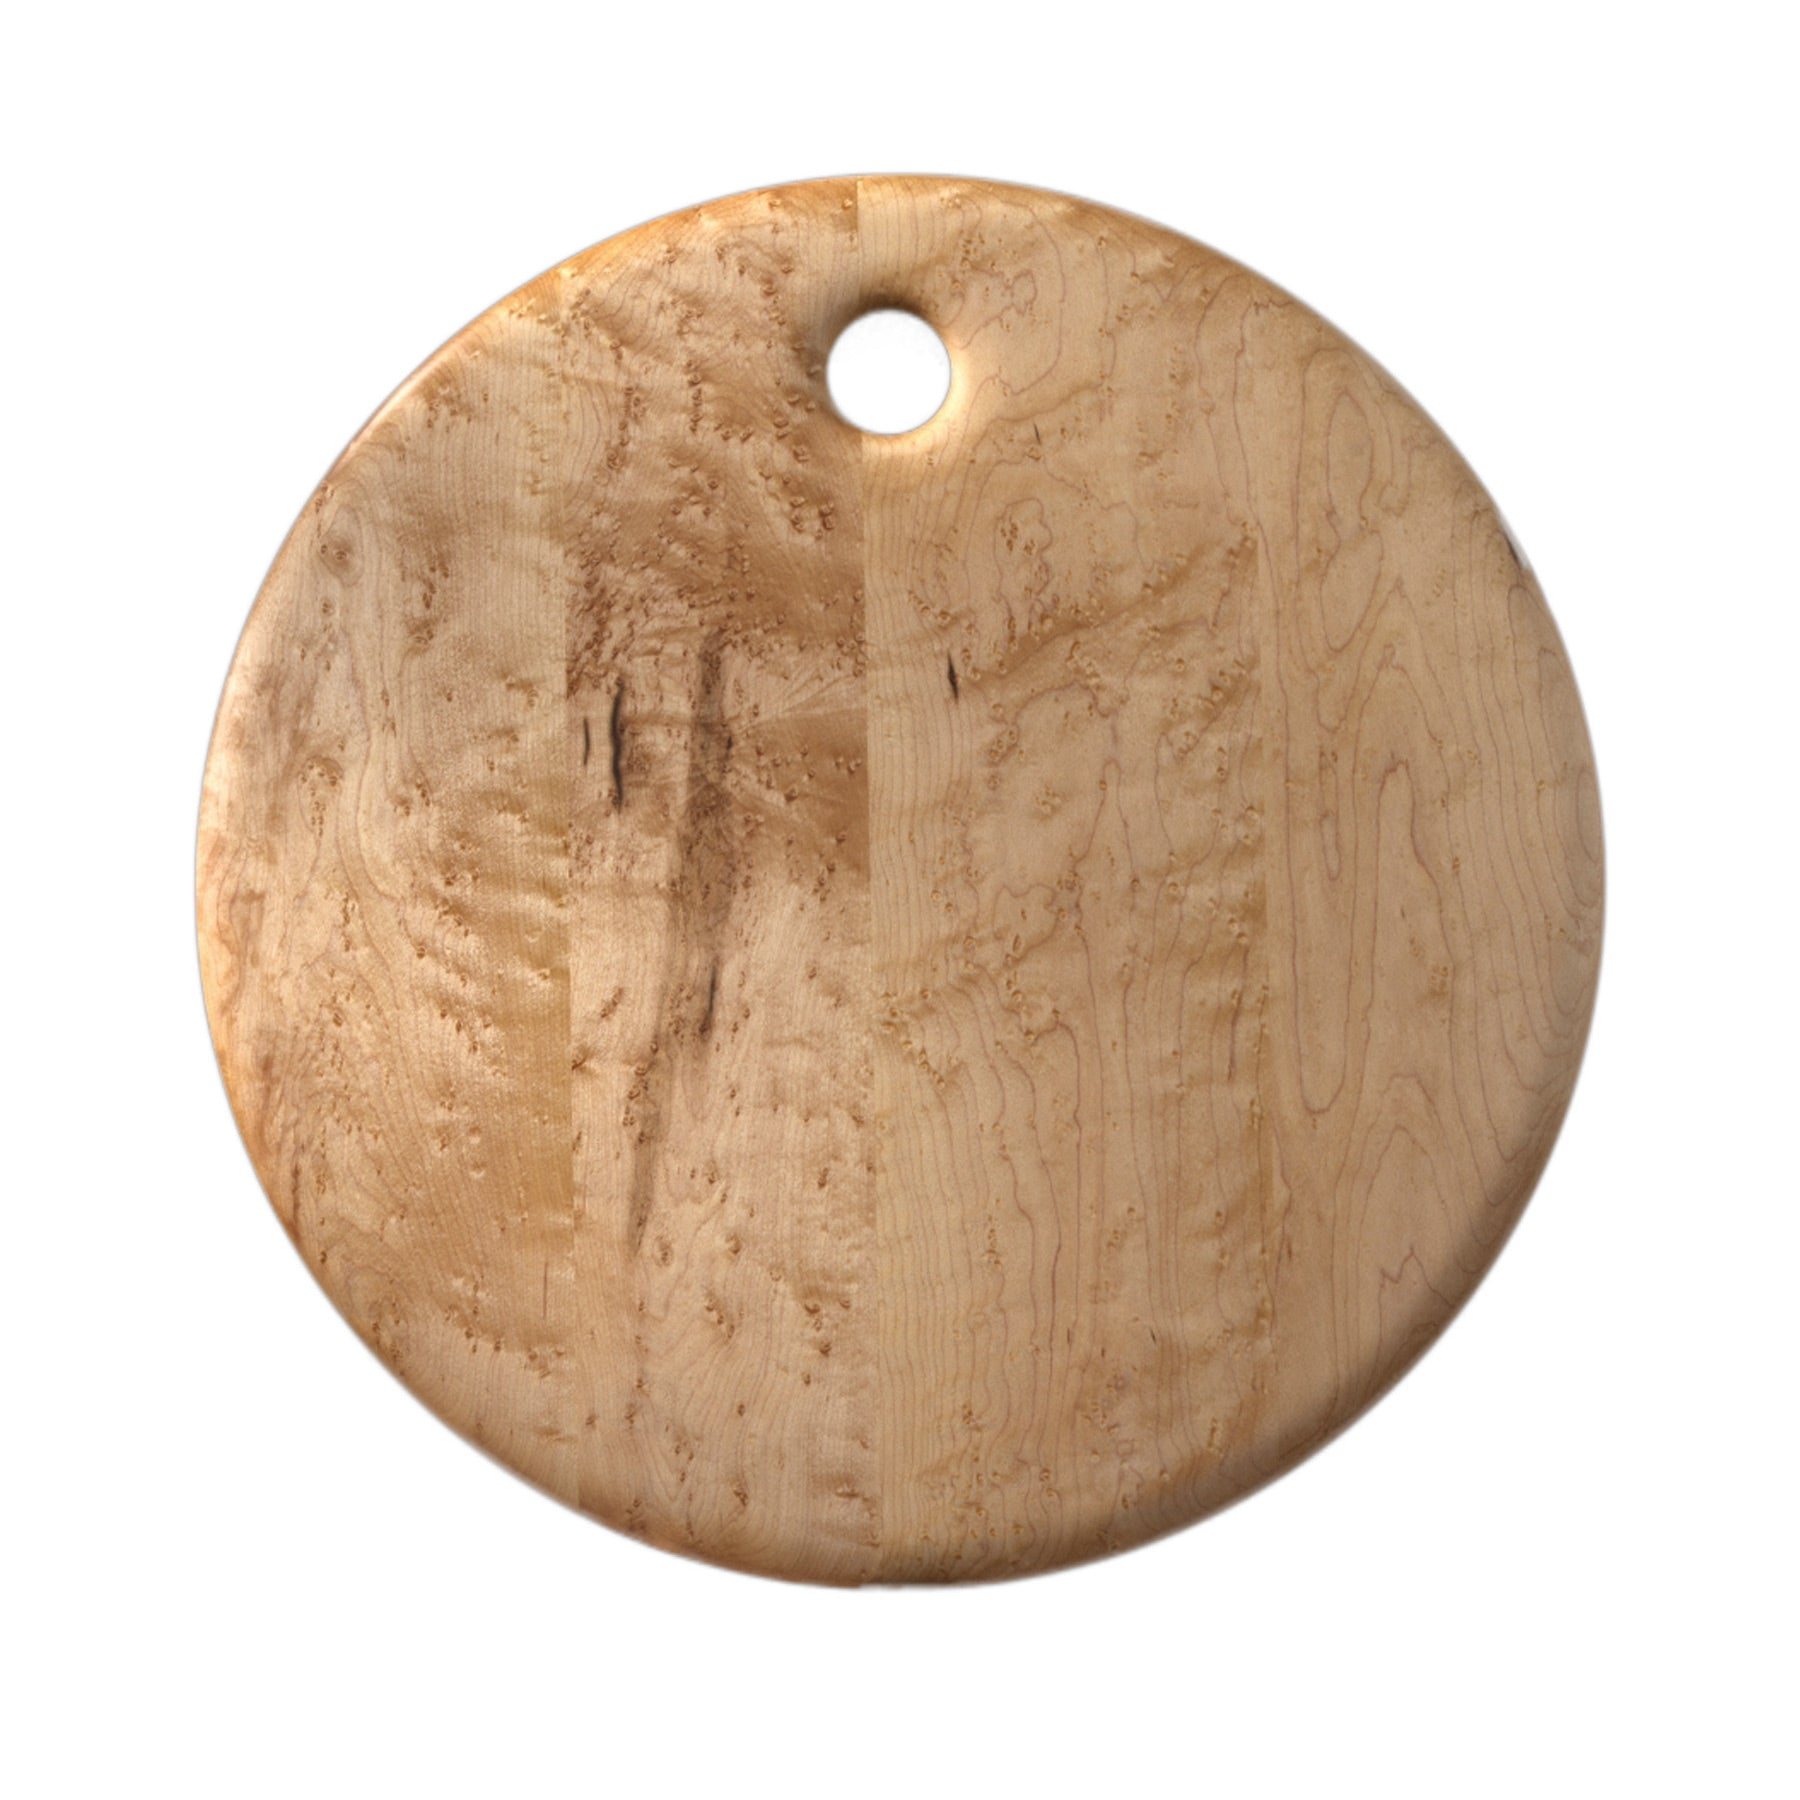 Edward Wohl Maple Cutting Board 16 Heath Ceramics